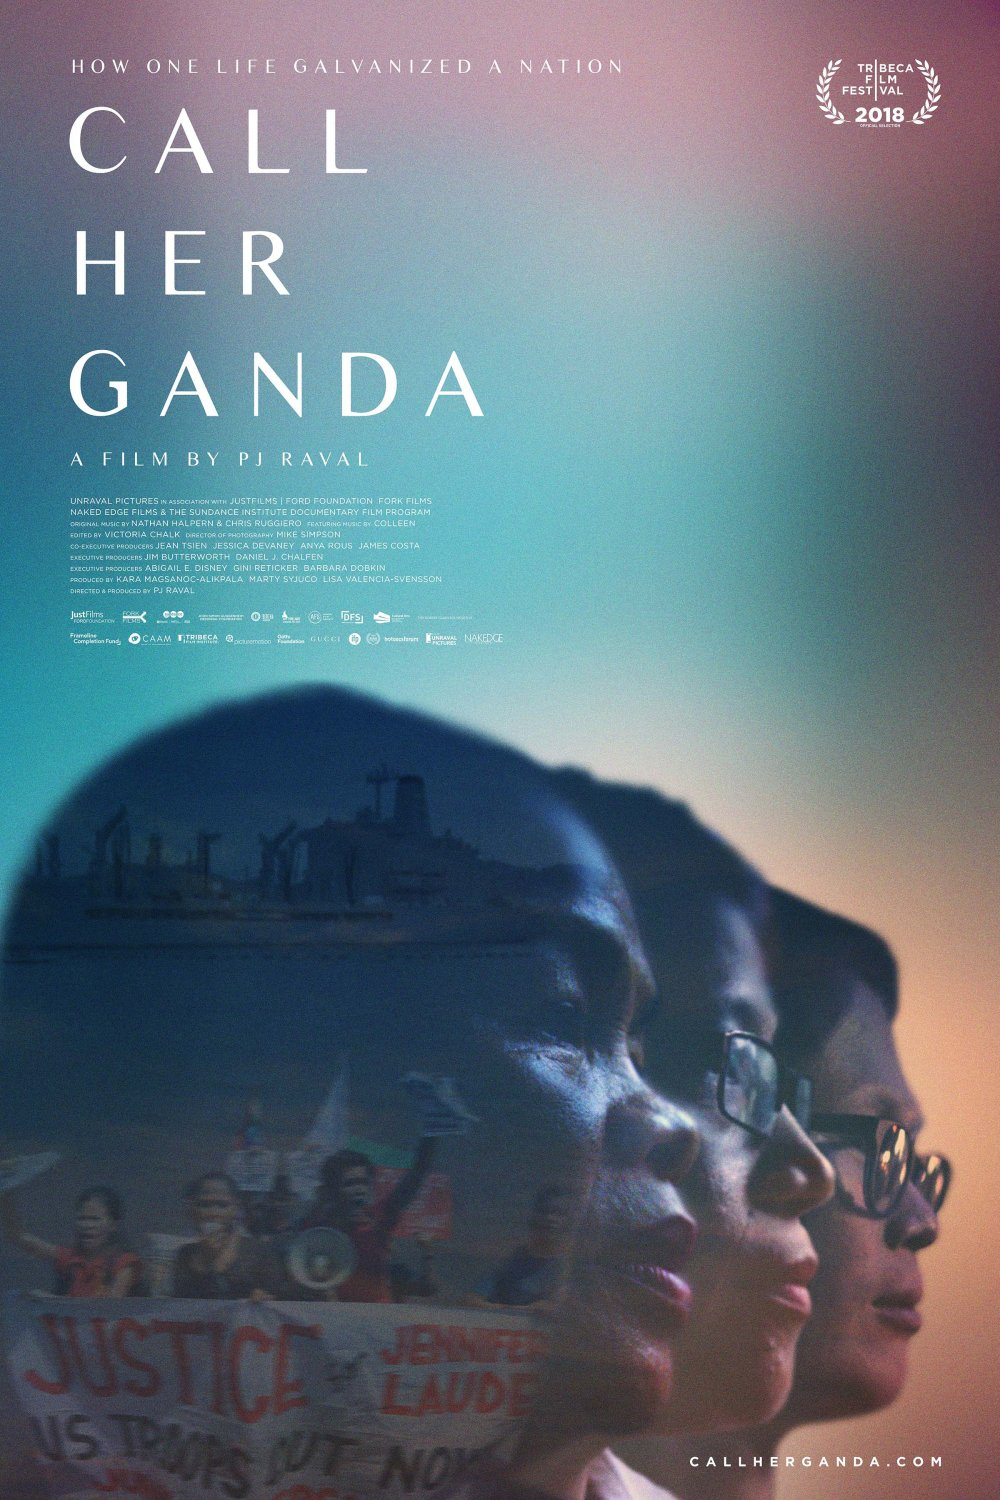 <strong>Call Her Ganda</strong> – Years of imperial rule come to a head in this challenging and moving documentary